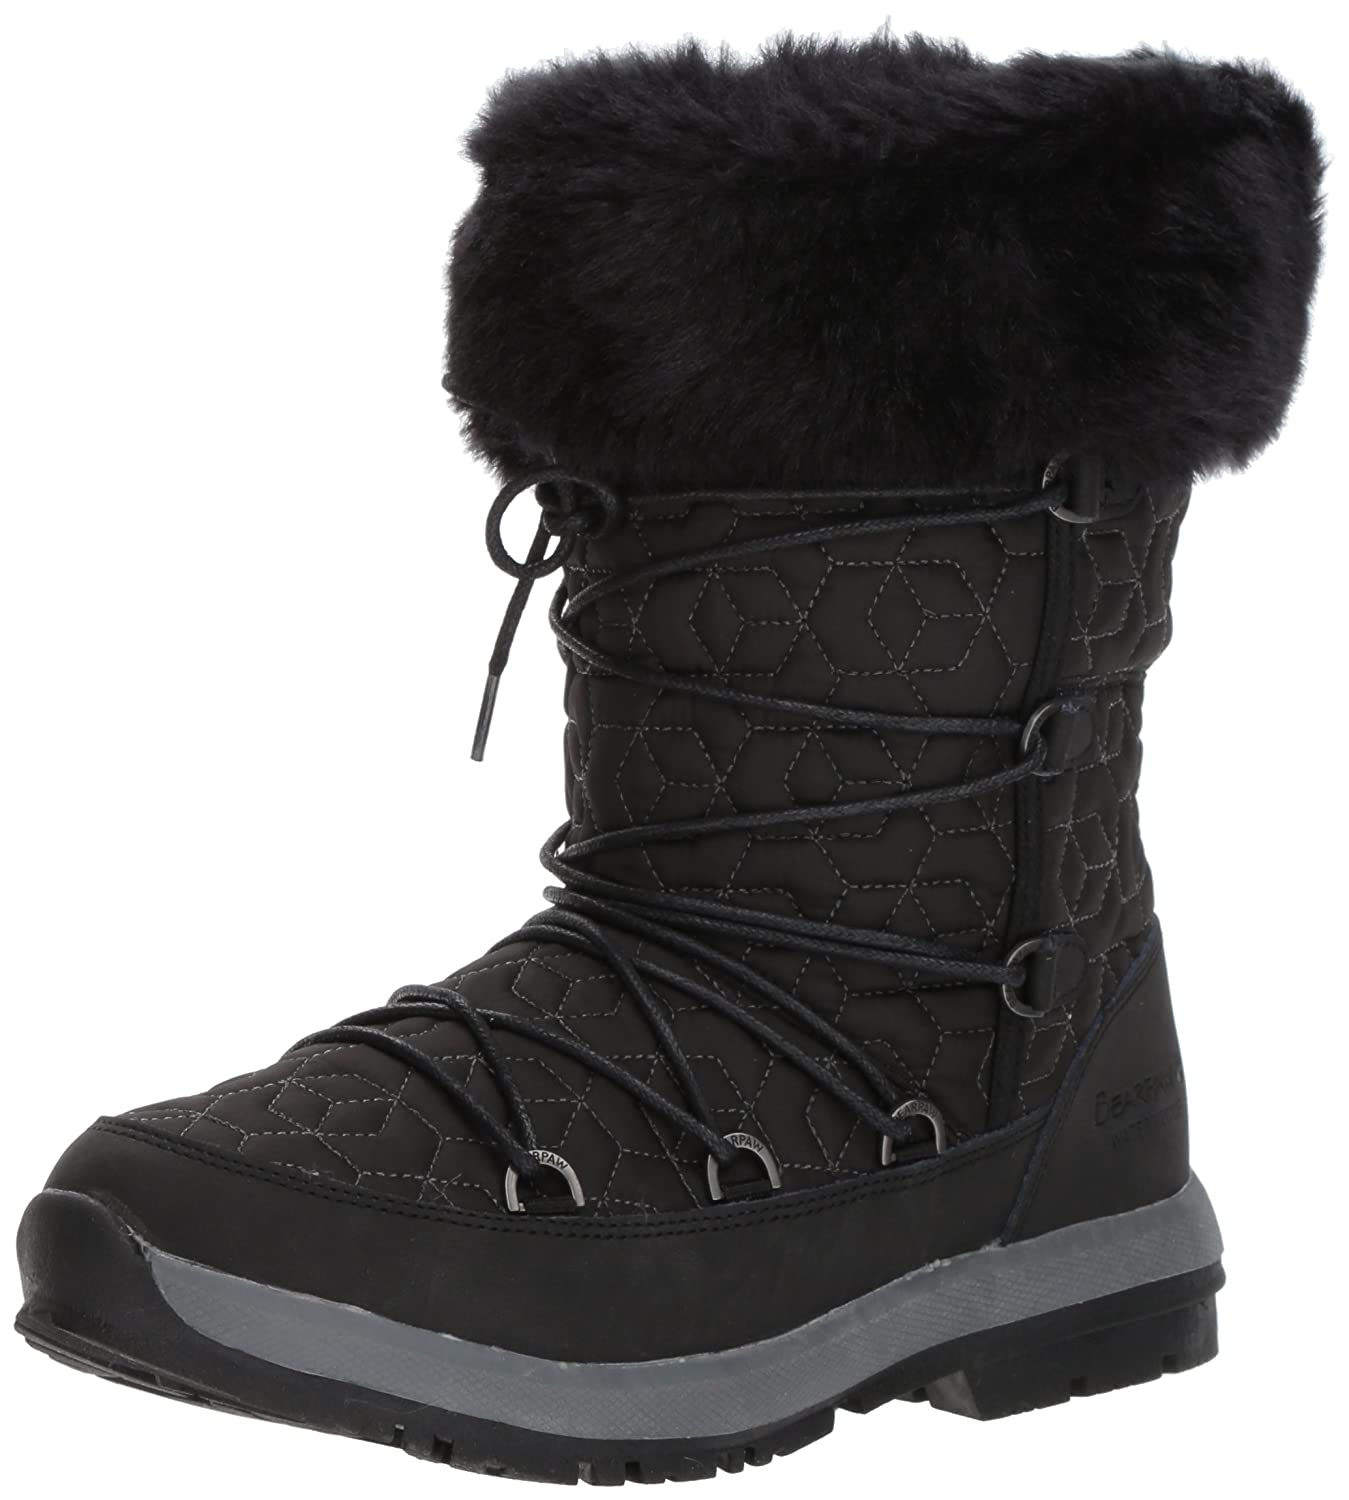 BEARPAW Women's Leslie Snow Boot B01DK4MIMU 11 B(M) US|Black